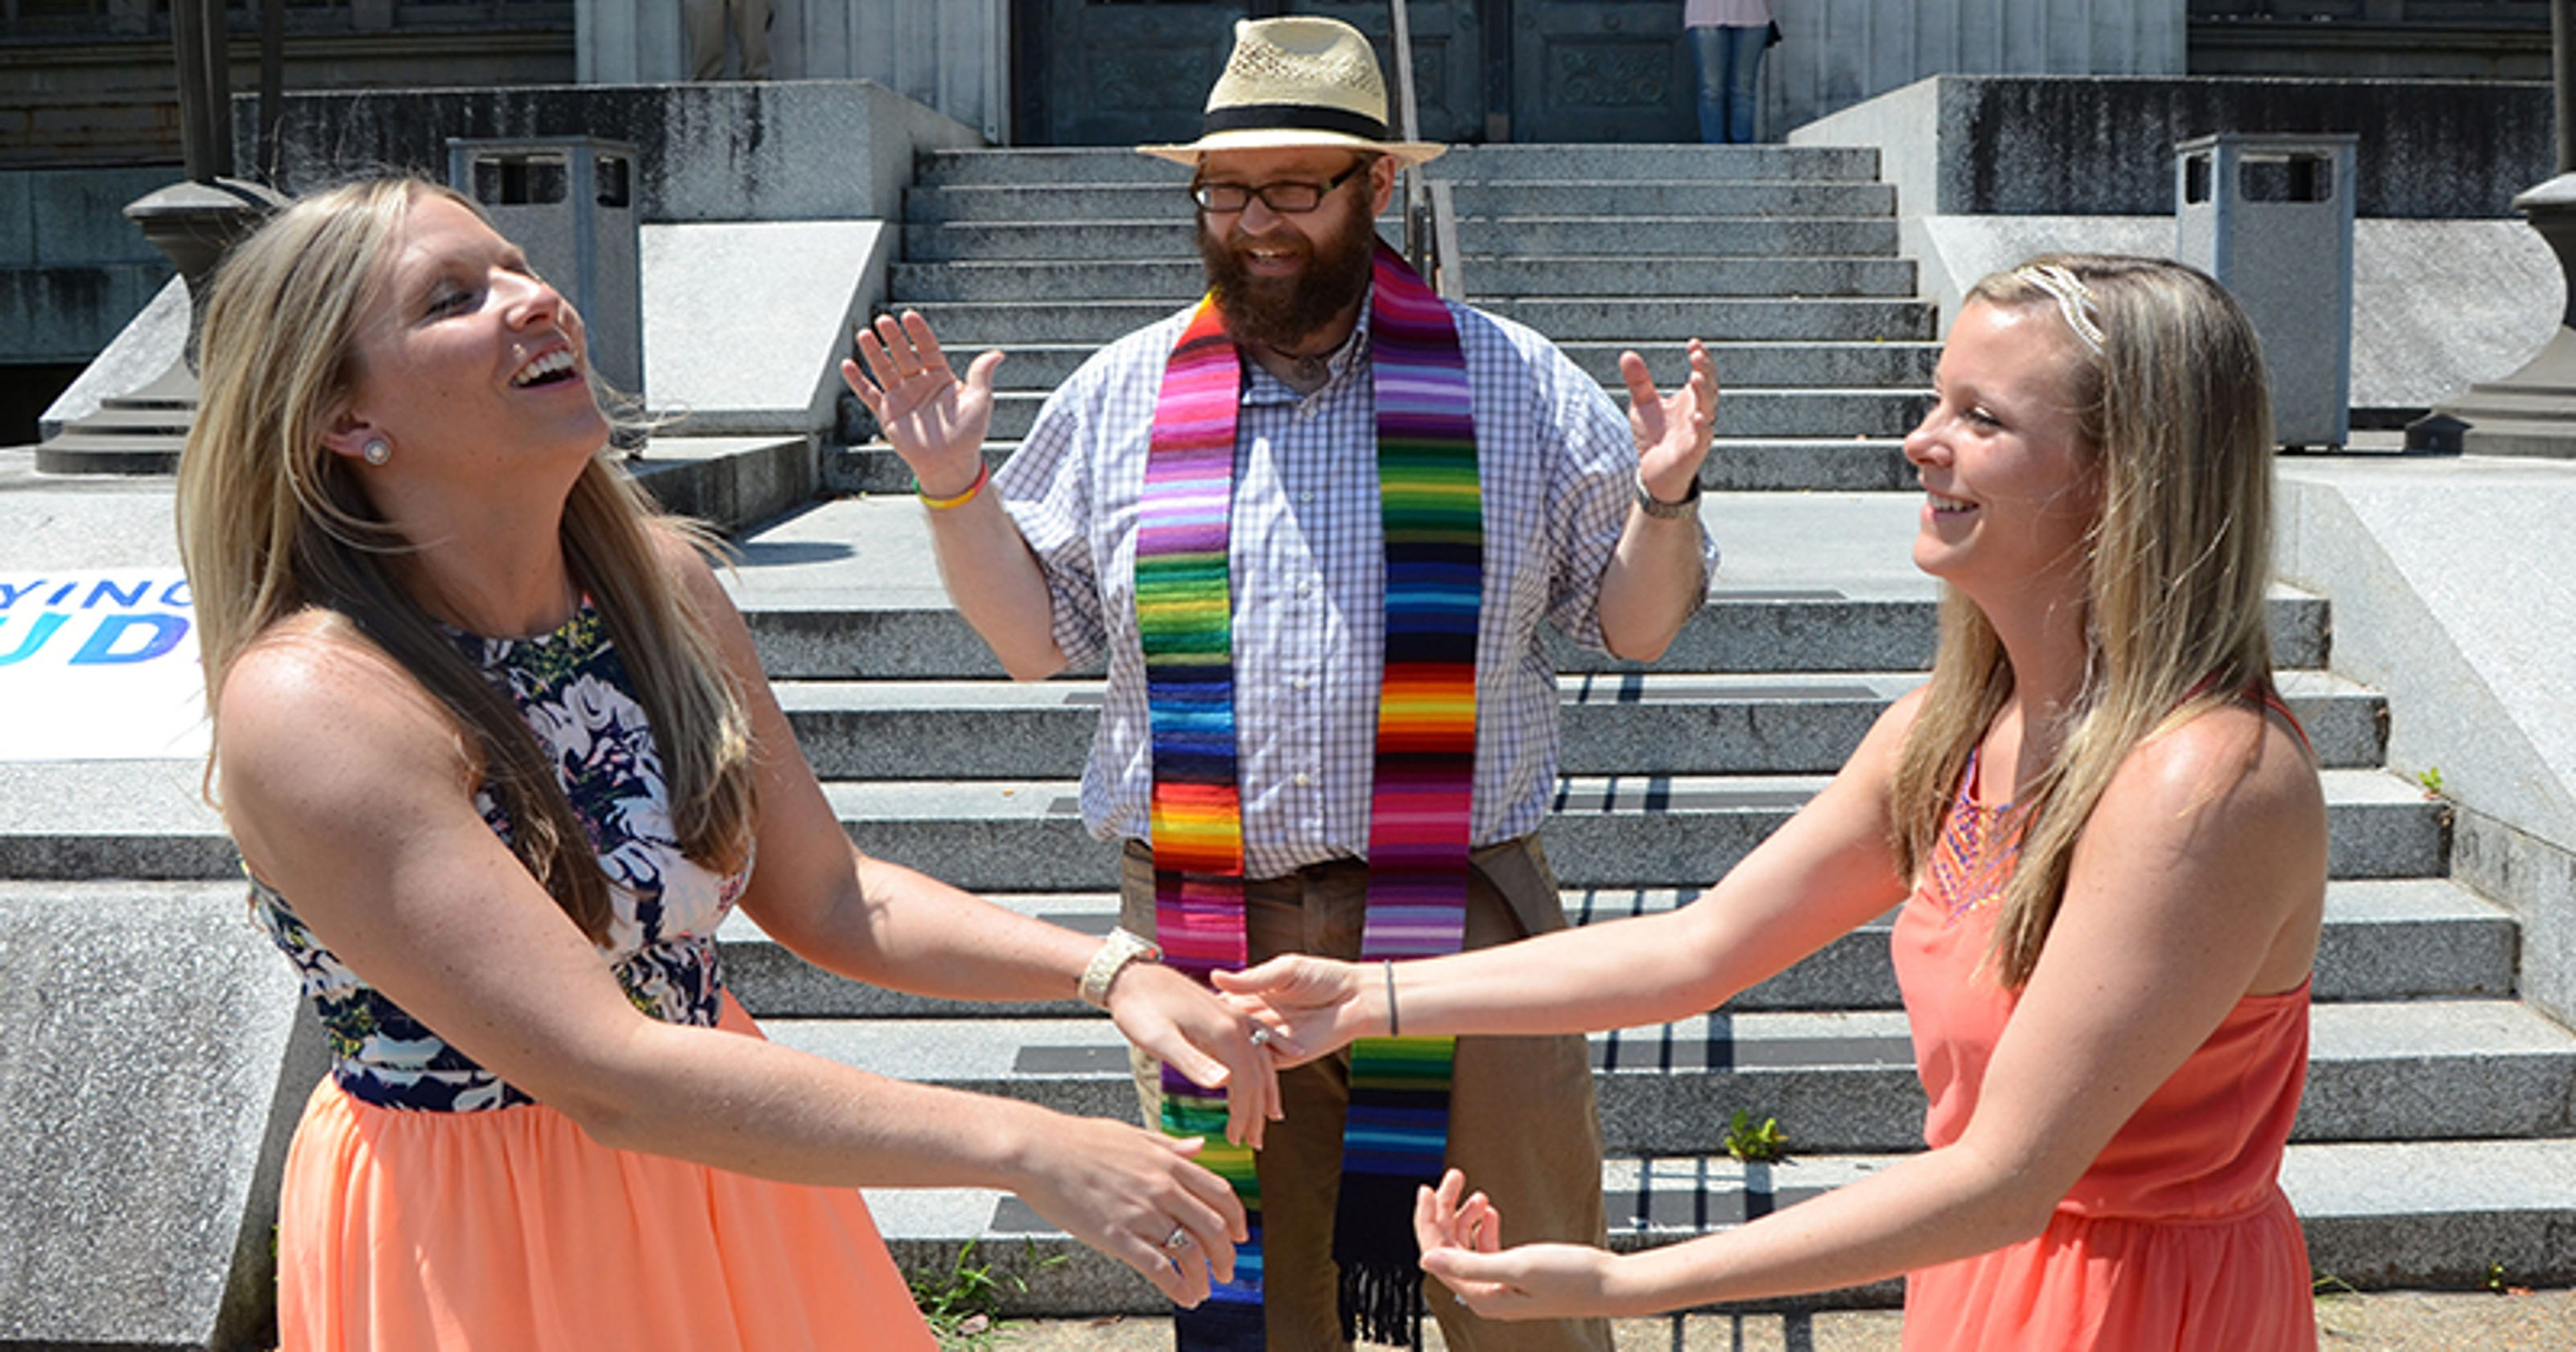 Polygamists filed federal lawsuit over gay marriage in Mississippi